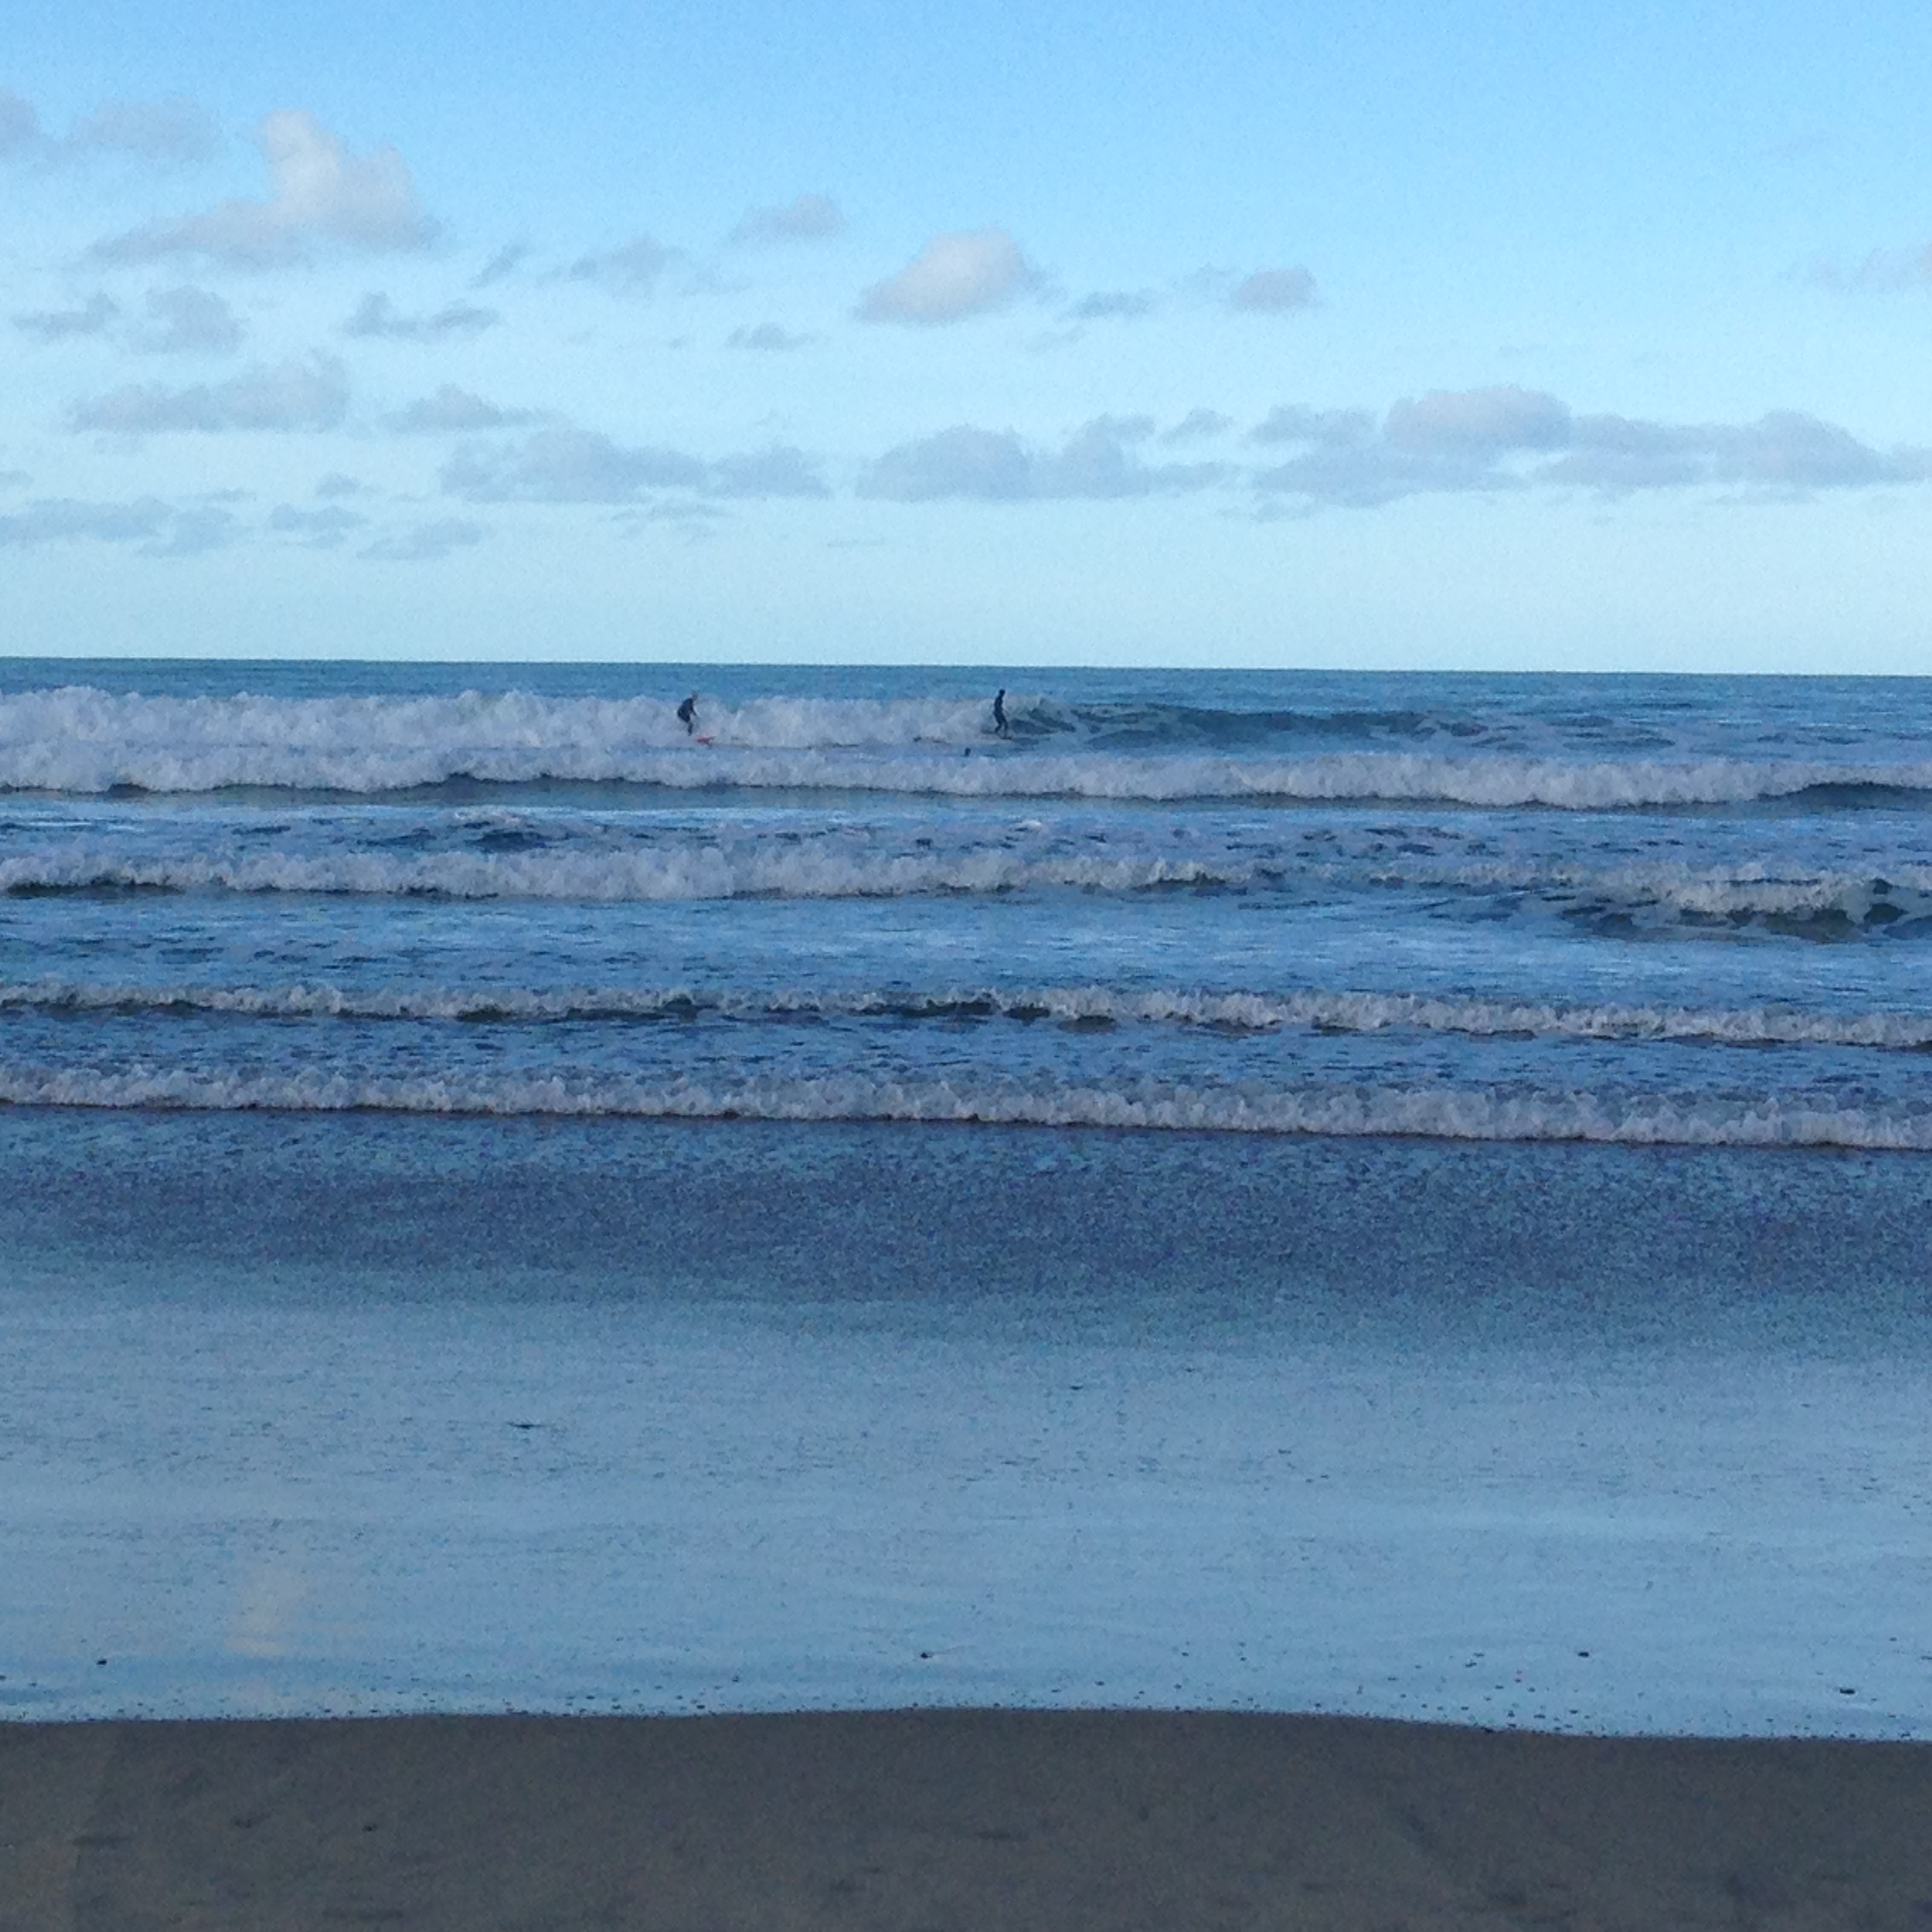 There were a lot of surfers